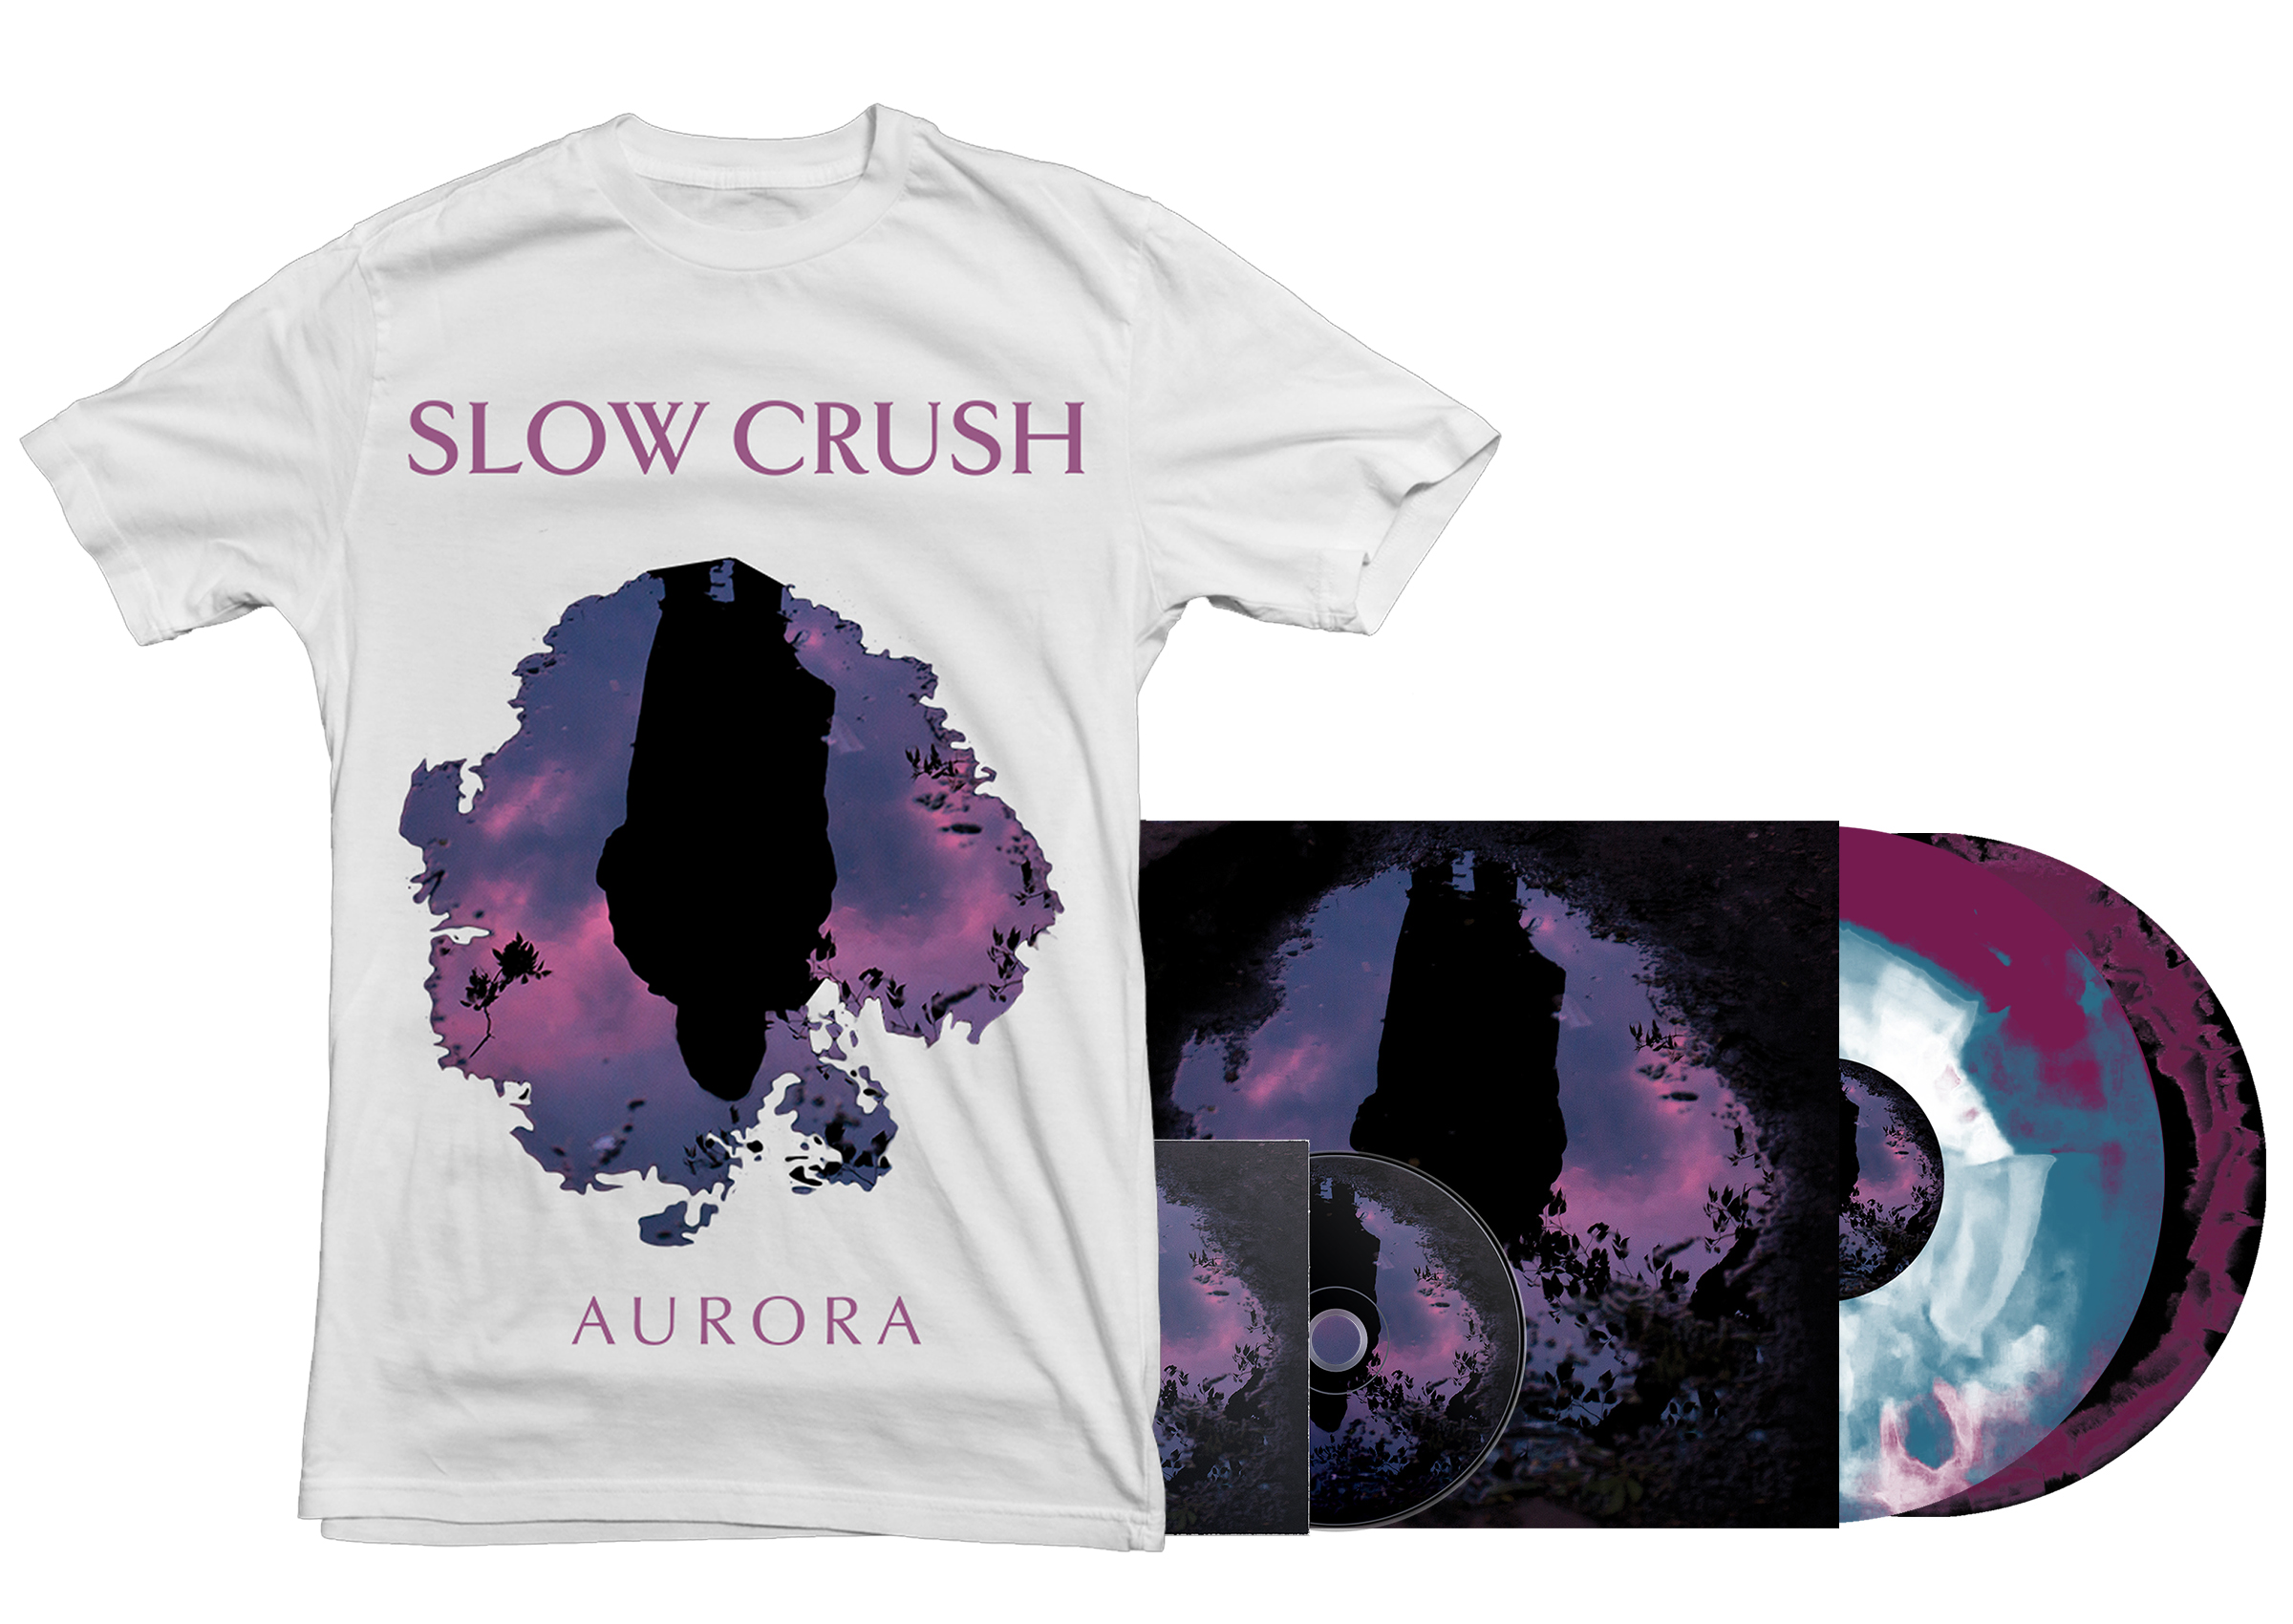 Slow Crush - all formats + shirt